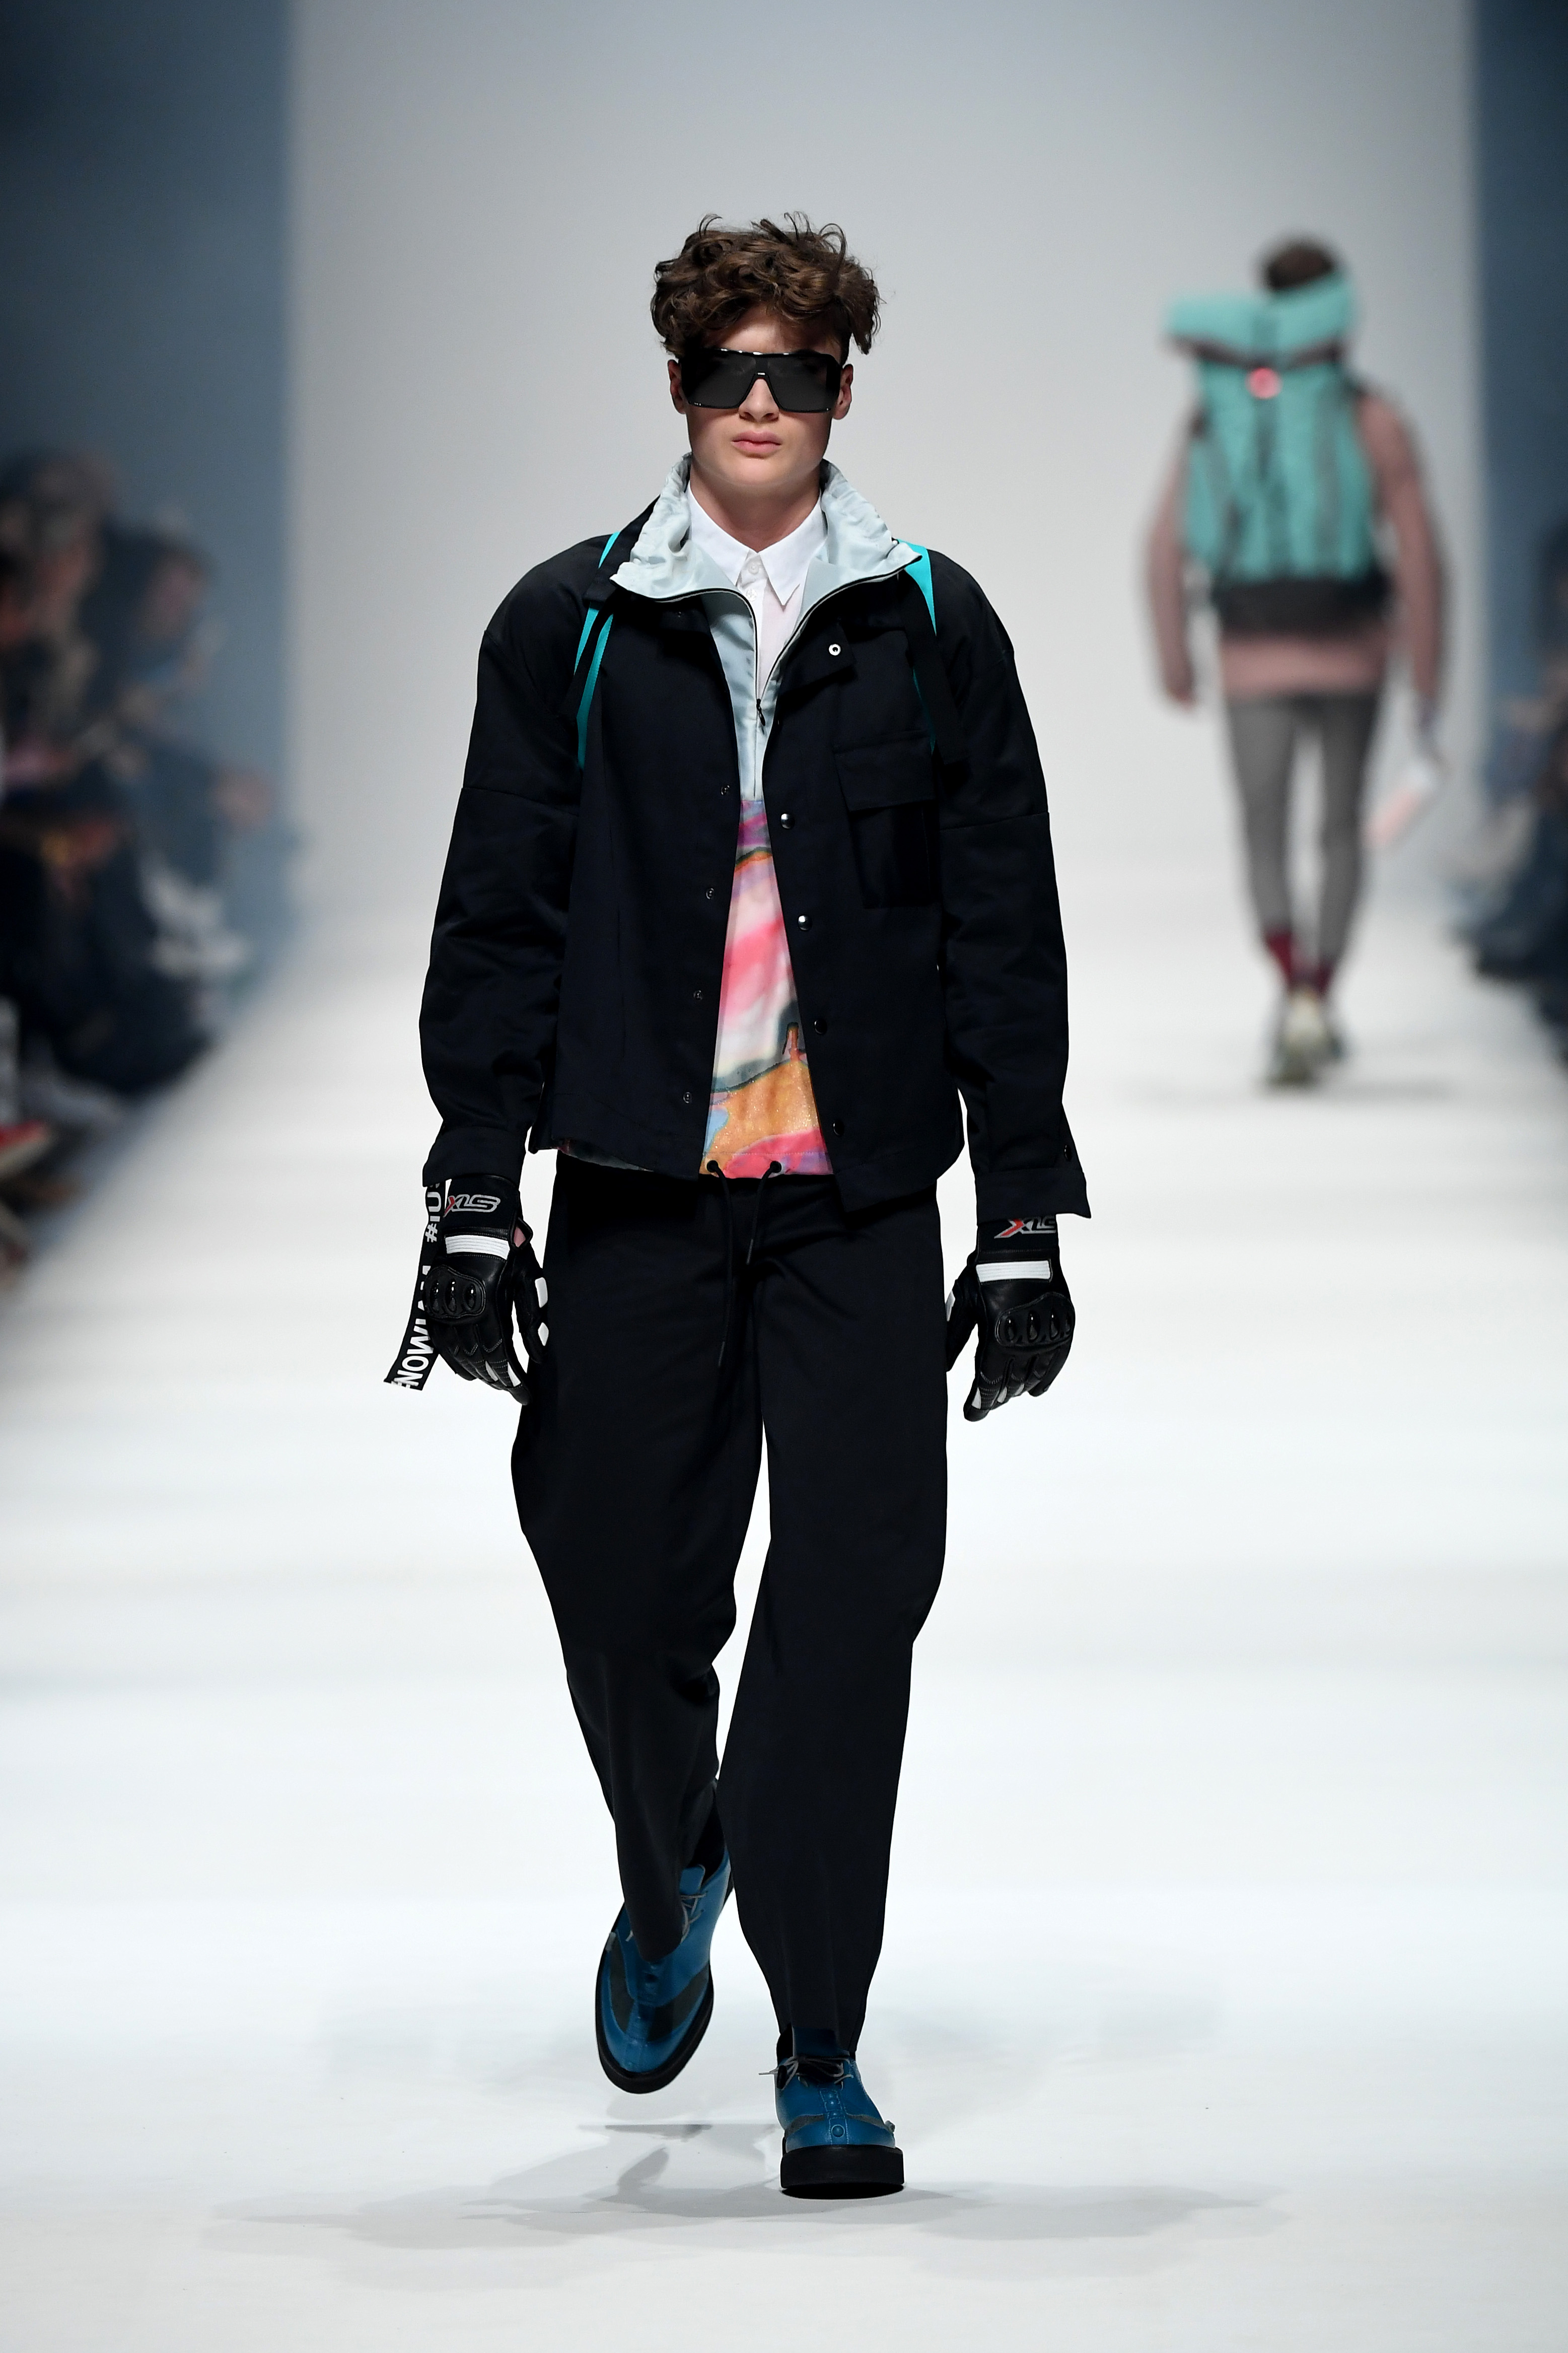 BERLIN, GERMANY - JANUARY 14: A model wearing a suit by AA Gold, zip jacket by Gaya, shirt by Marco Scaiano, bag by Fjaellraeven, glasses by Andy Wolf, gloves by Biker-Zone and shoes by Skua walks the runway at the Neonyt show during Berlin Fashion Week Autumn/Winter 2020 at Kraftwerk Mitte on January 14, 2020 in Berlin, Germany. (Photo by John Phillips/Getty Images for MBFW)